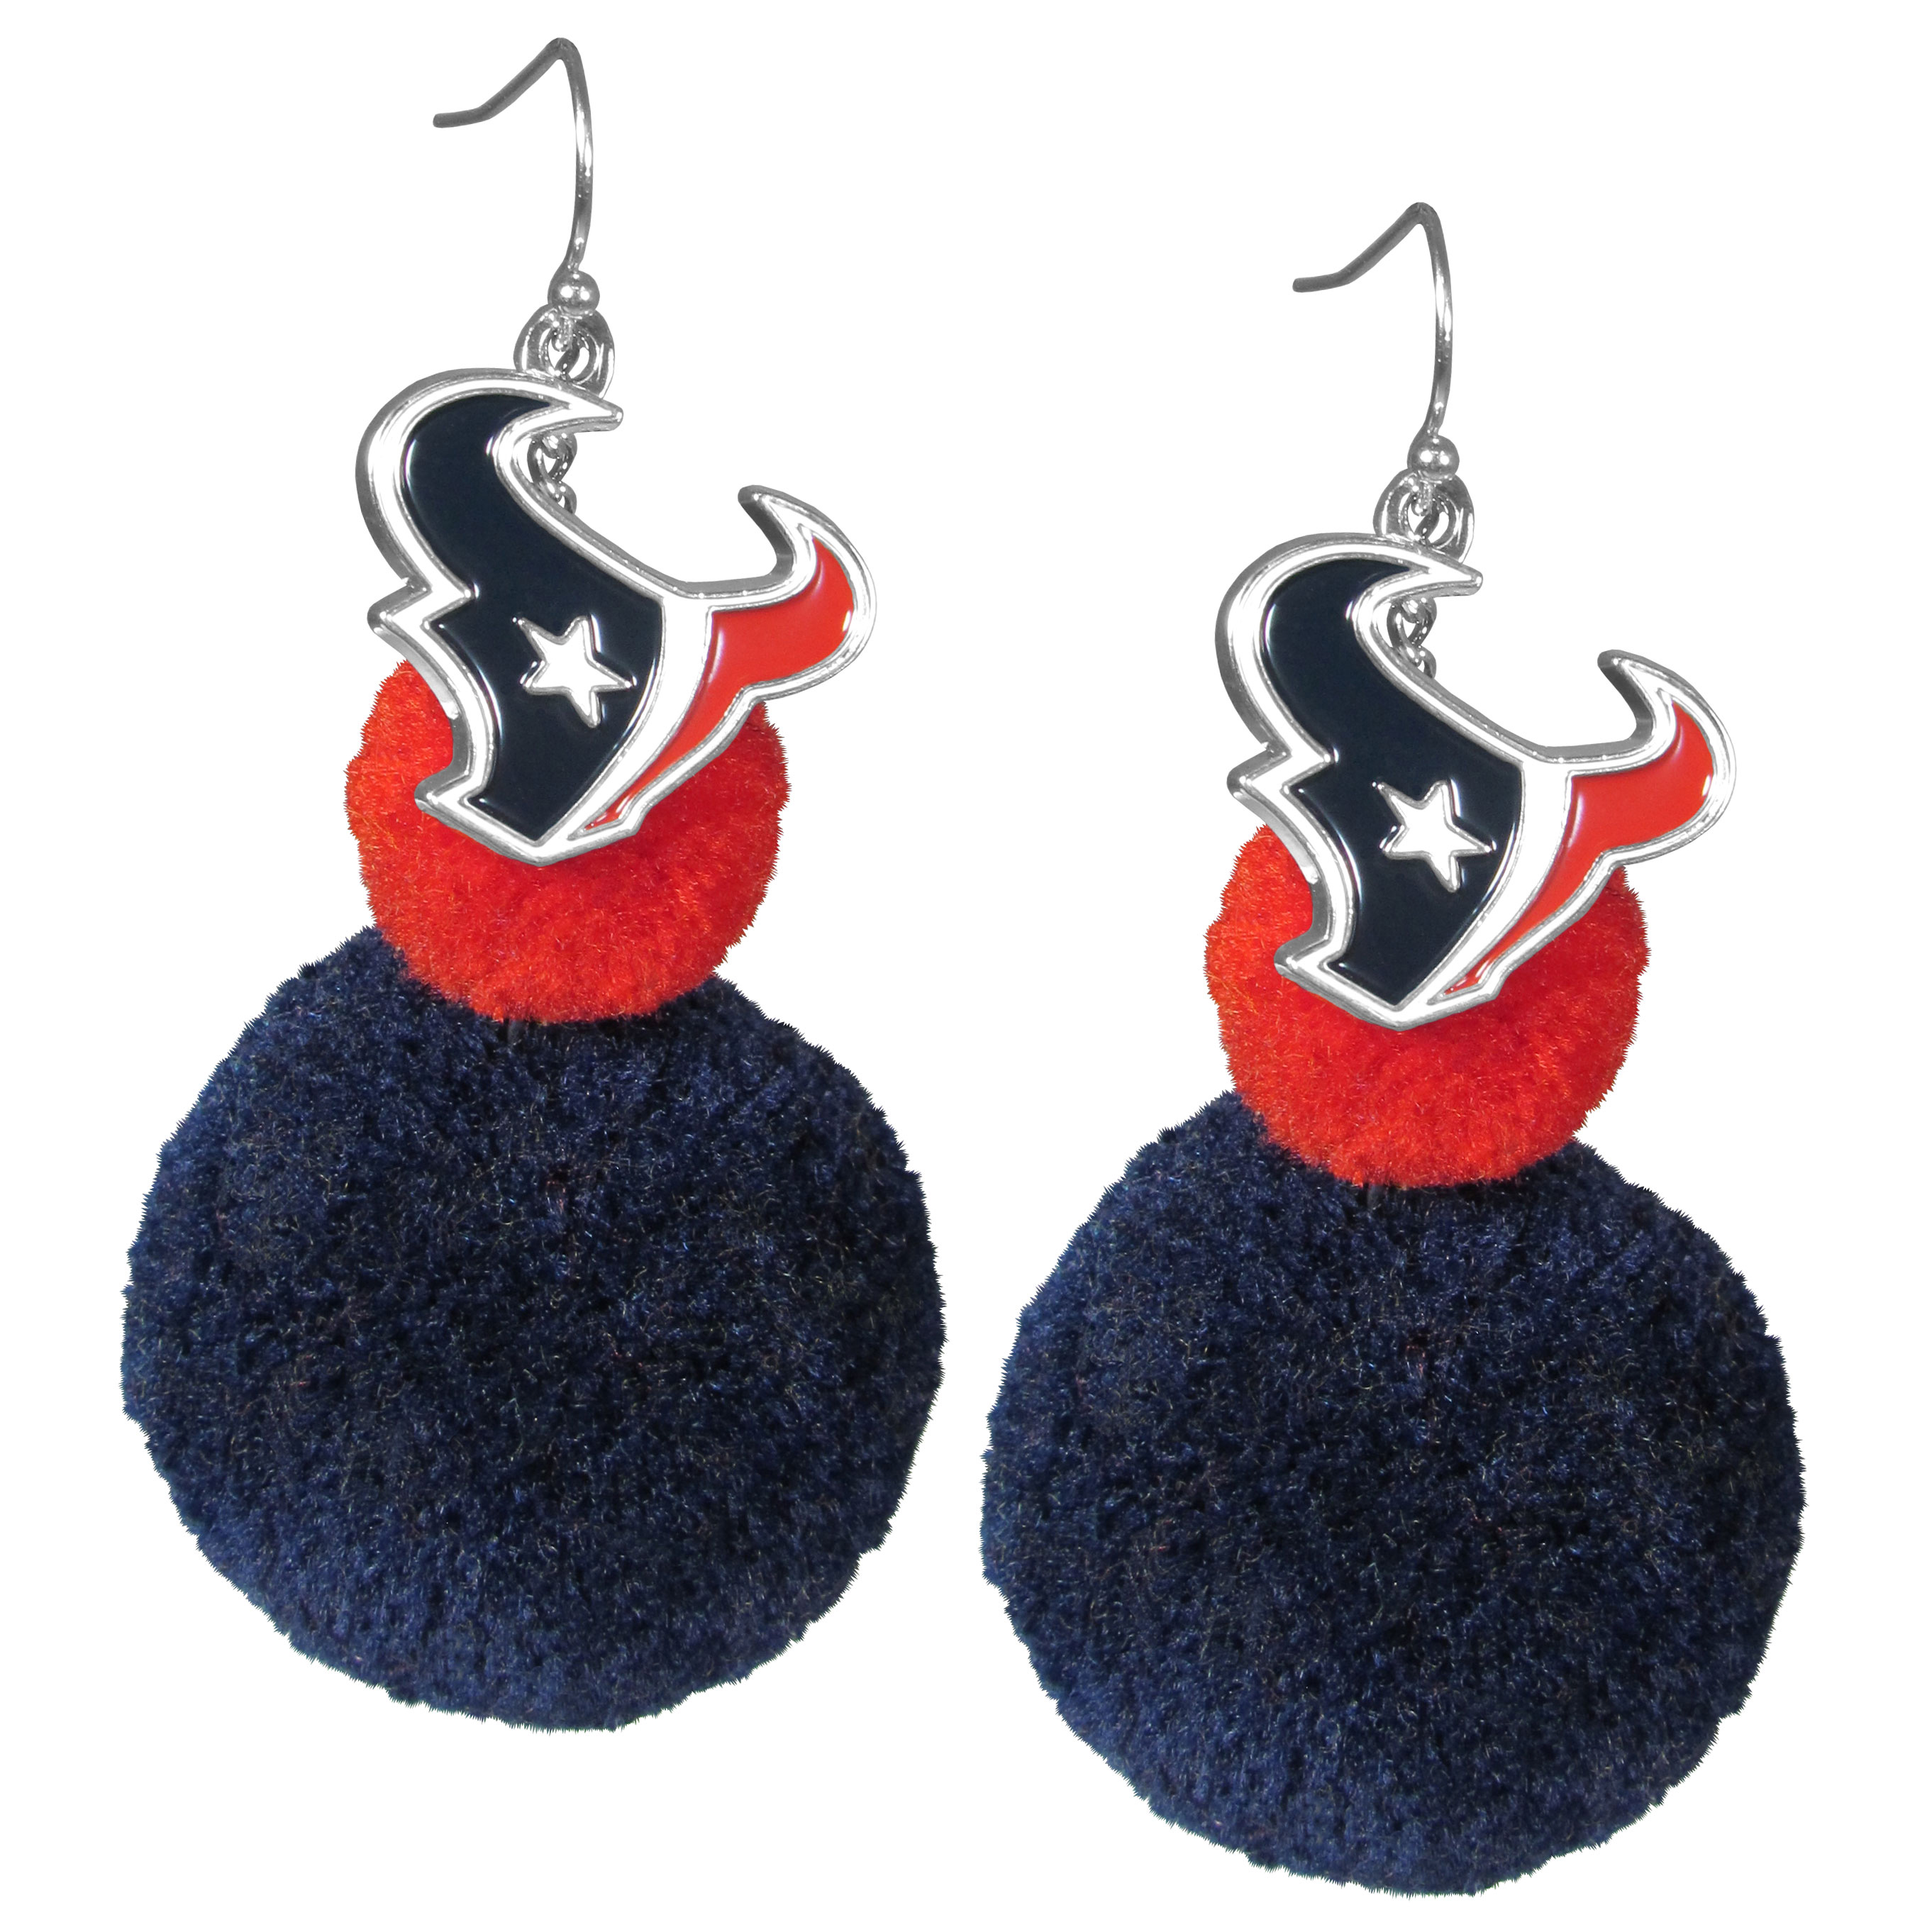 Houston Texans Pom Pom Earrings - These fun and bold earrings are a game day must! The earrings feature a metal Houston Texans charm with enameled color details that hangs above to colorful pom pom charms. The largest pom is 1.5 inches round for, the earrings hang at 3.5 inches long. The fishhook posts are nickel free and hypoallergenic.